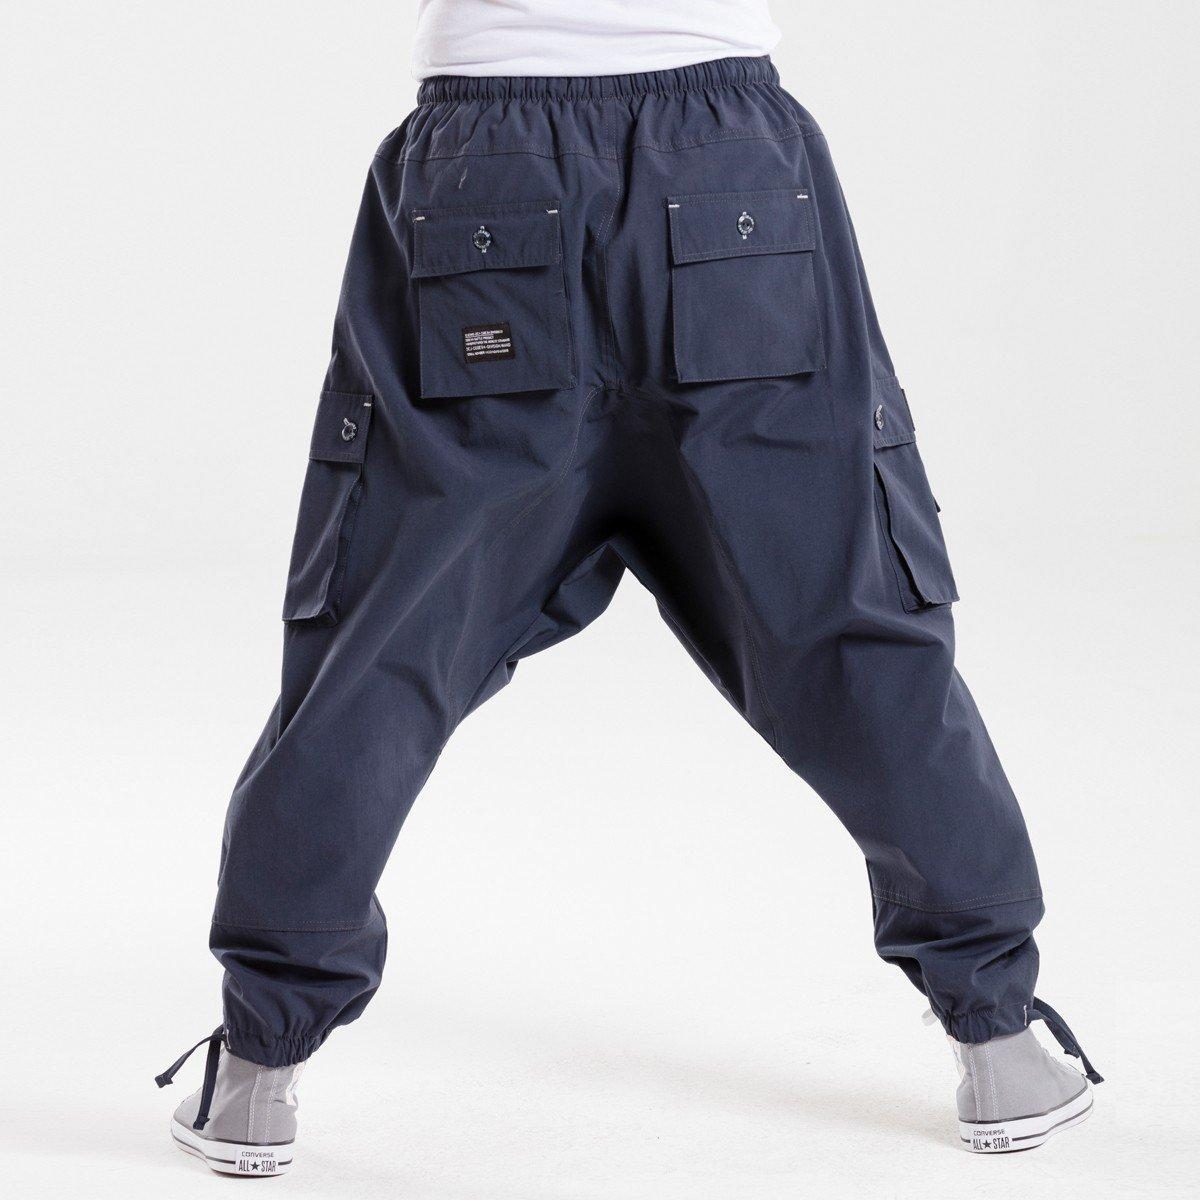 48ca8ed8695ff Saroual battle NAVY LONG Evo - DCJeans ® - sarouel & clothing - site ...